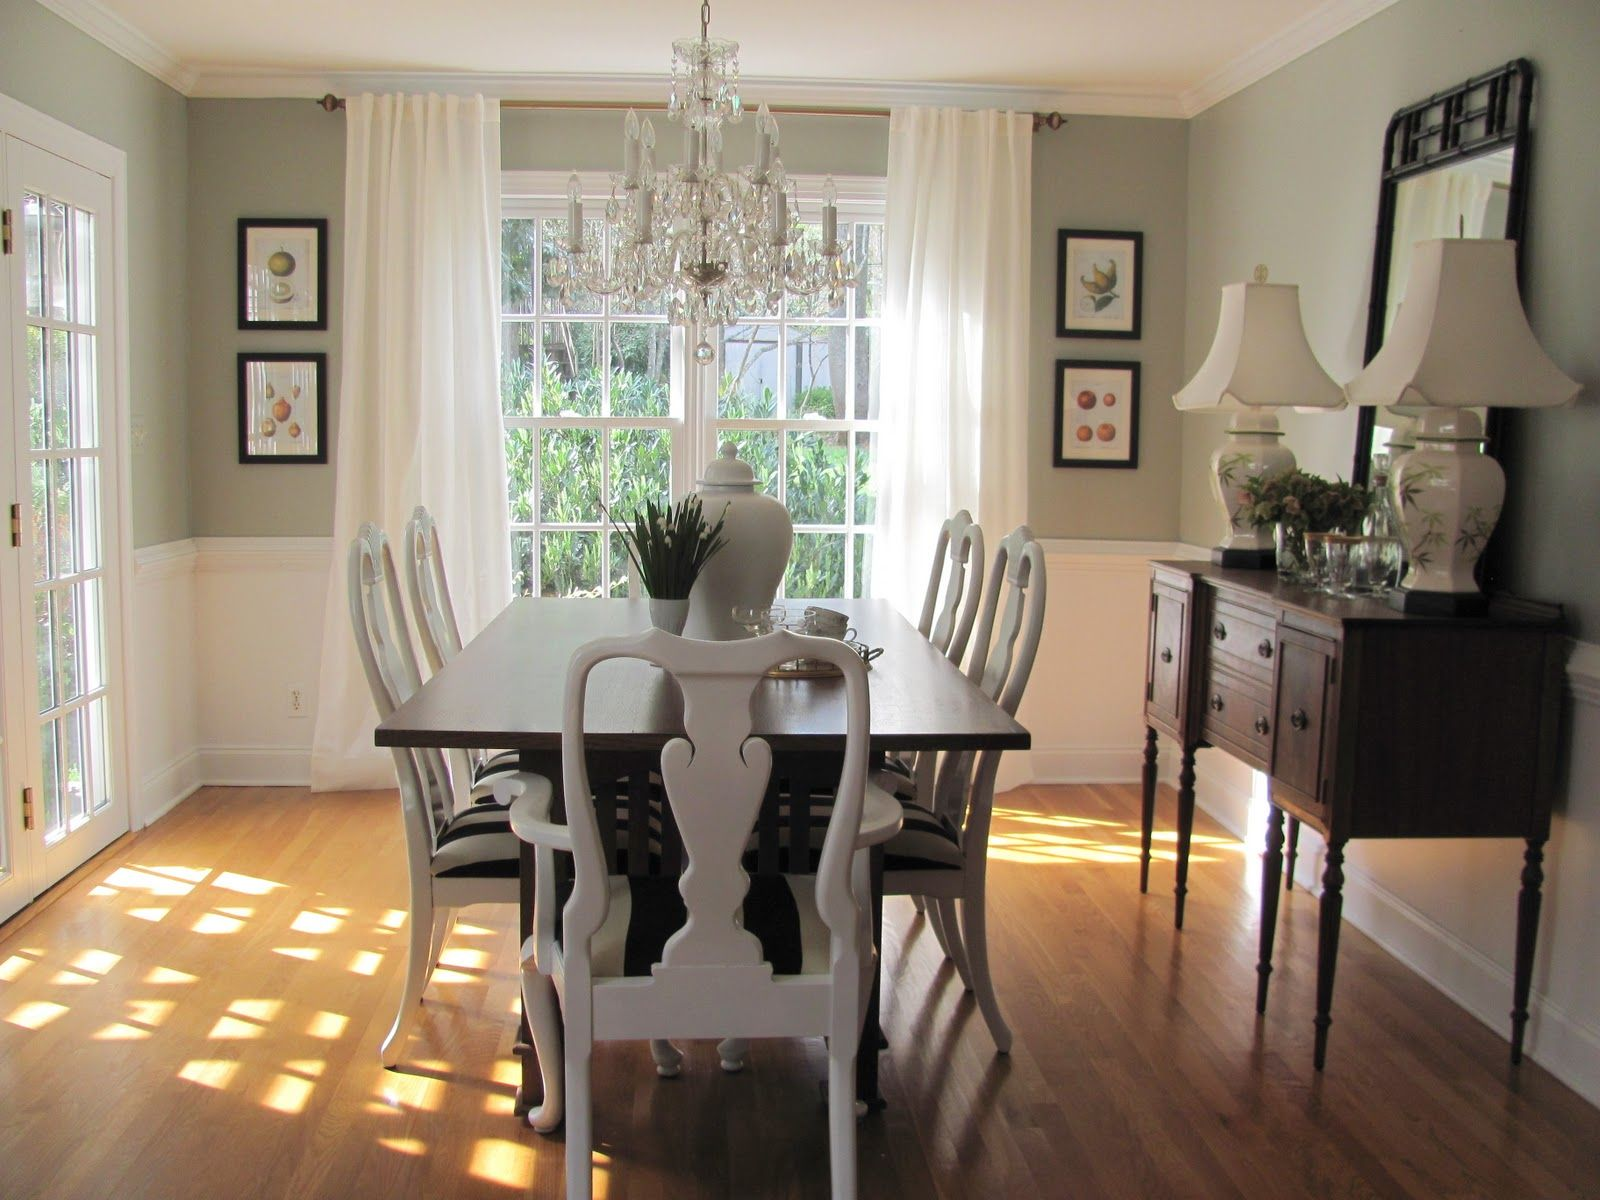 Dining room paint ideas with chair rail - Dining Room Paint Colors With Chair Rail Google Search